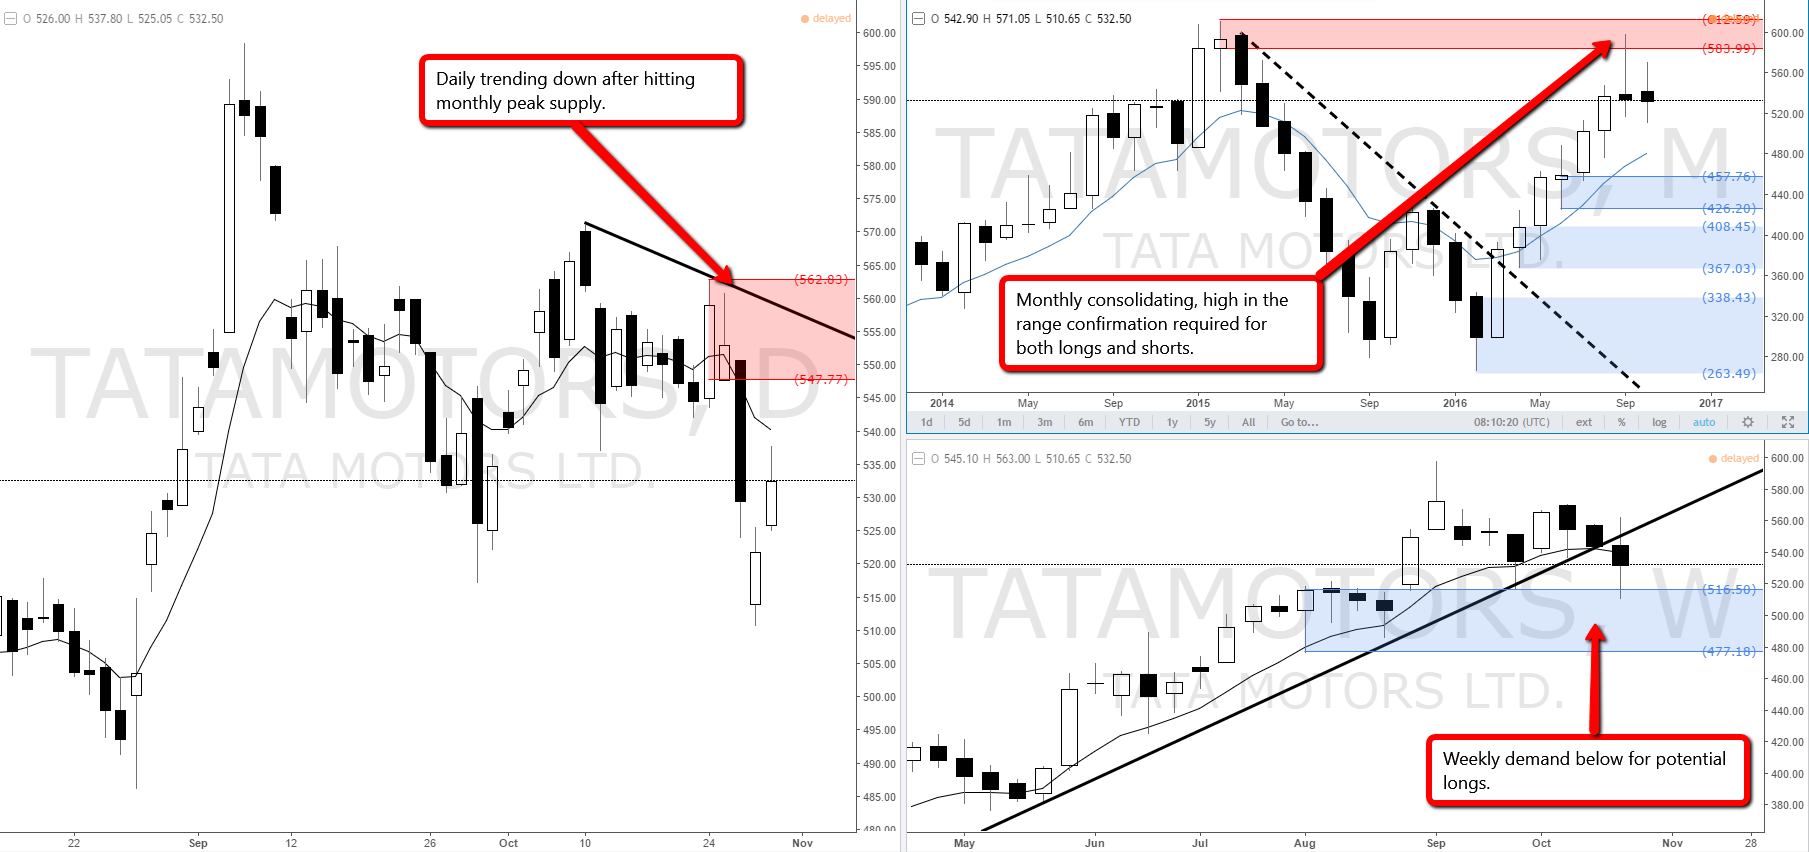 Indian Stock Tata Motors Monthly Supply Imbalance In